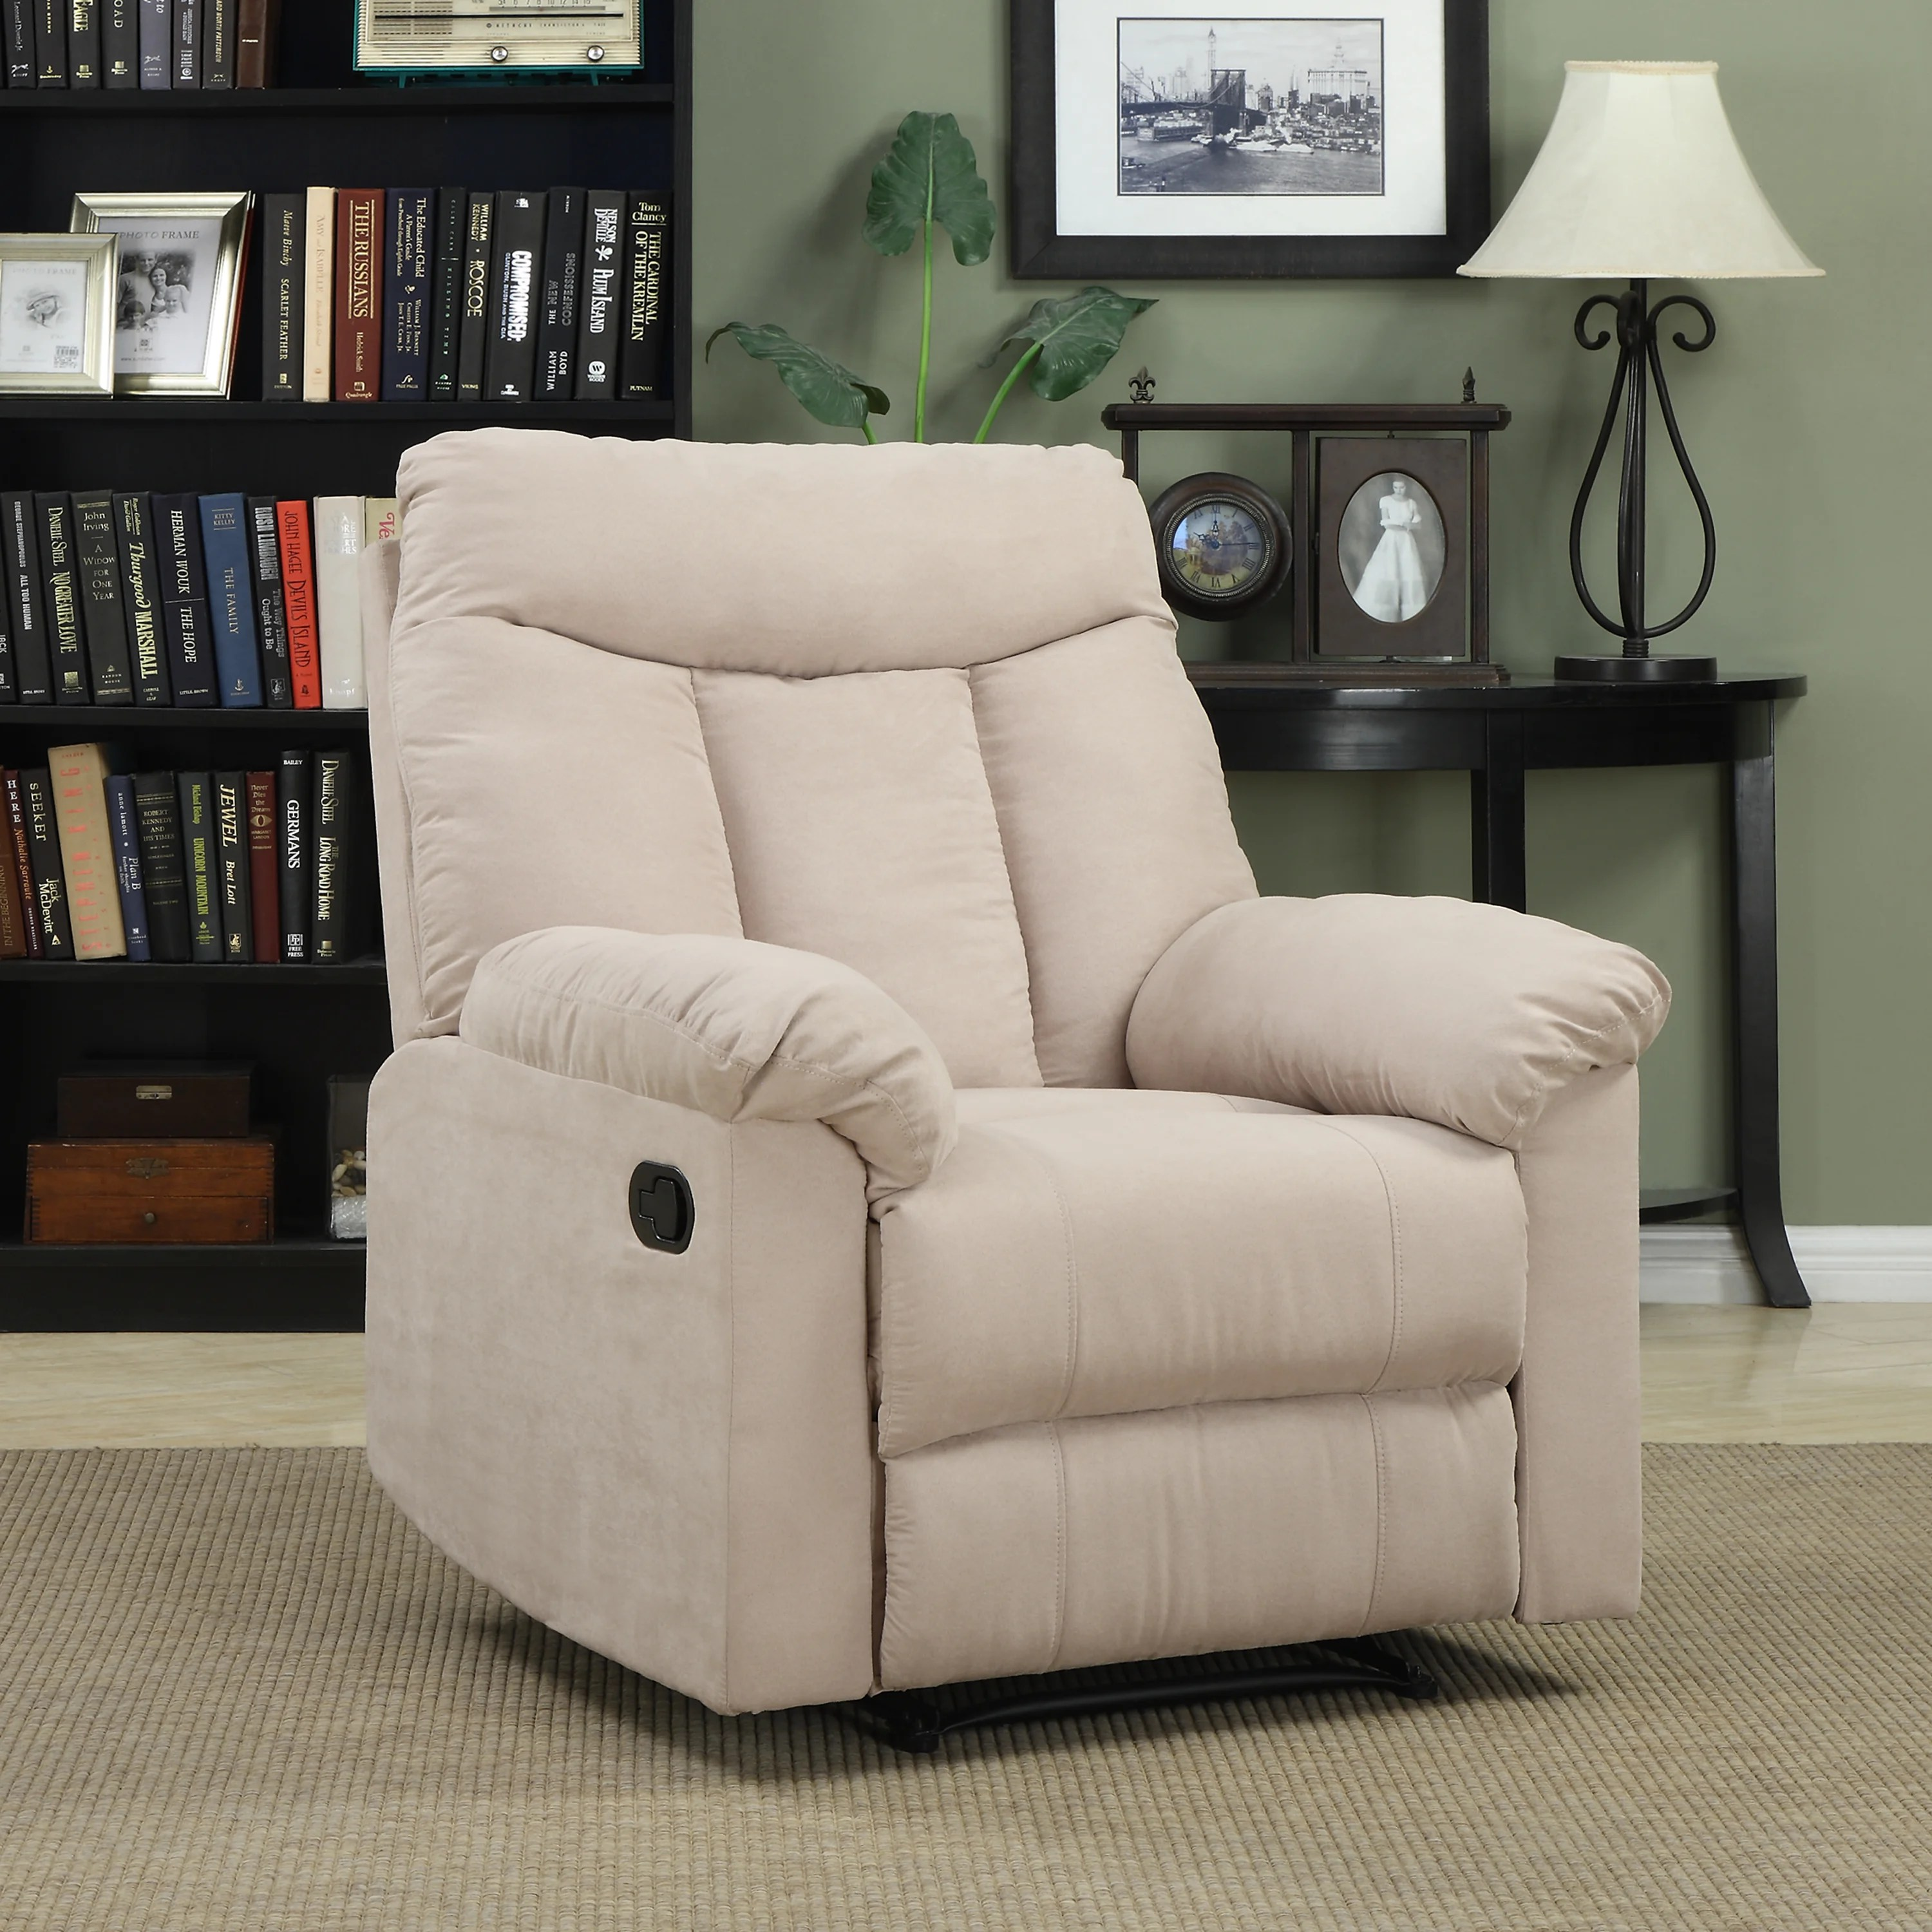 lazy boy microfiber sofa gold leather sofas small recliners - deals on 1001 blocks